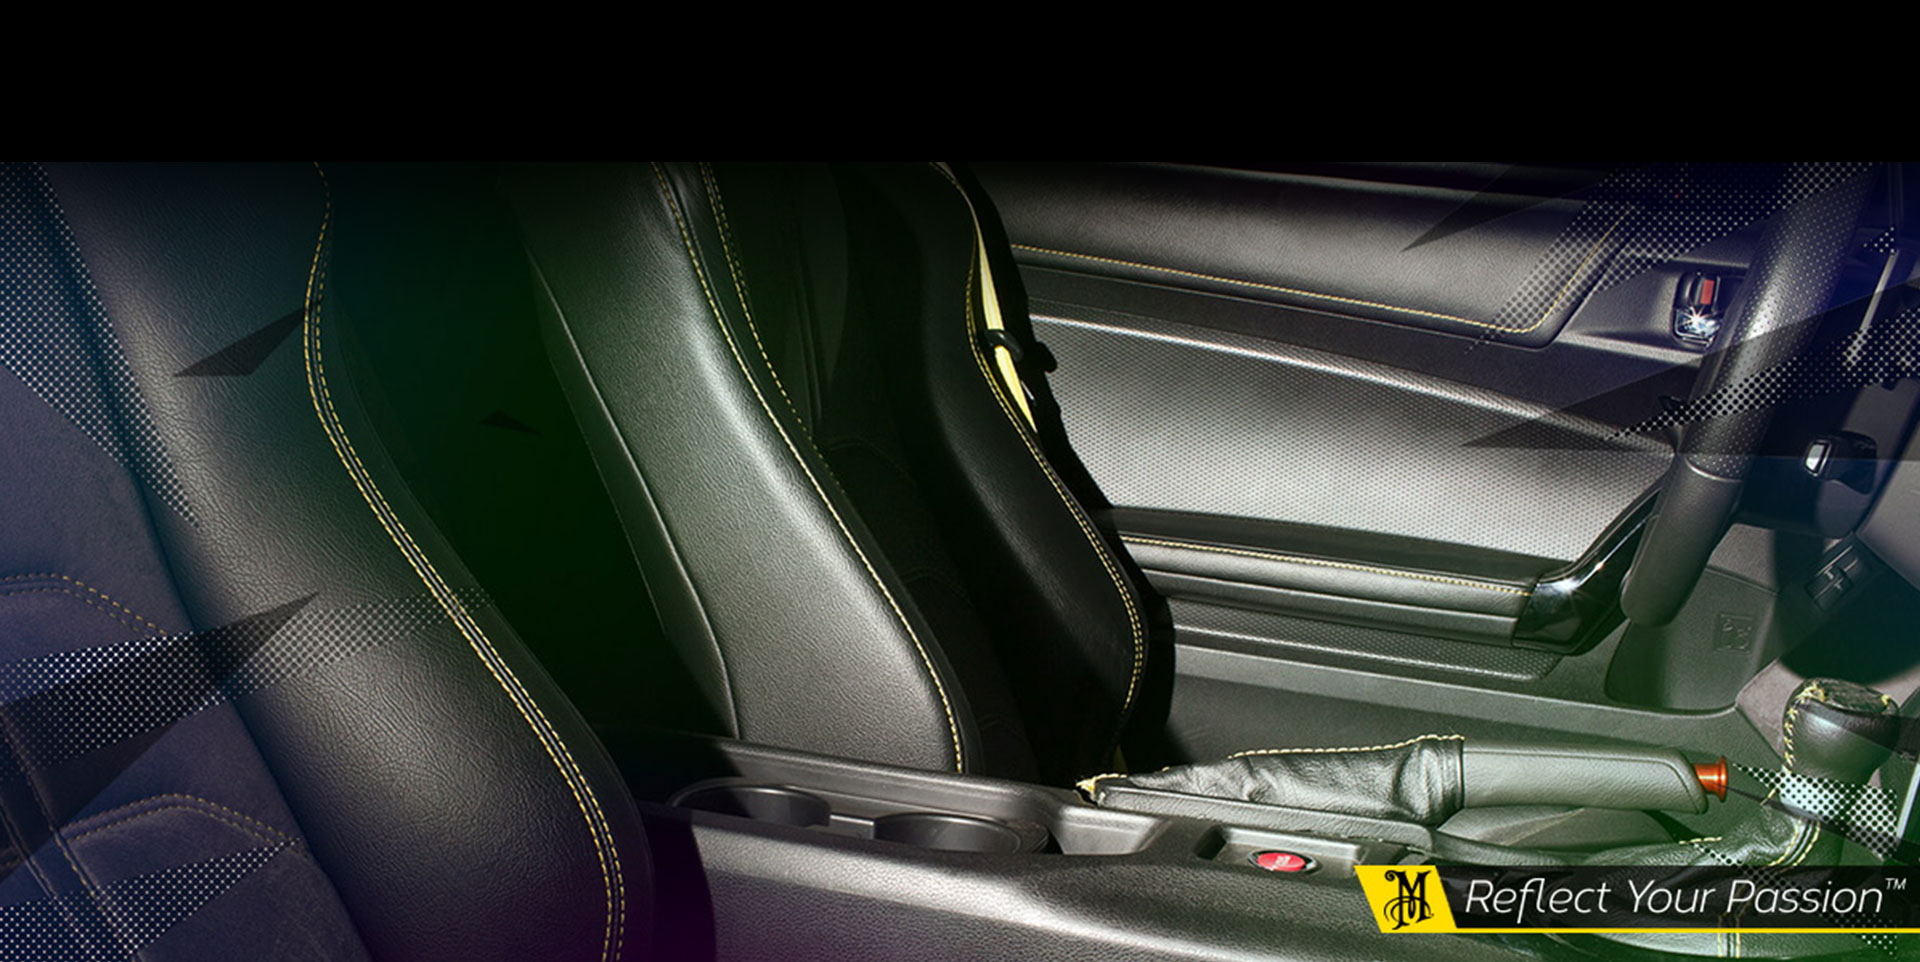 Meguiar's Interior Slide